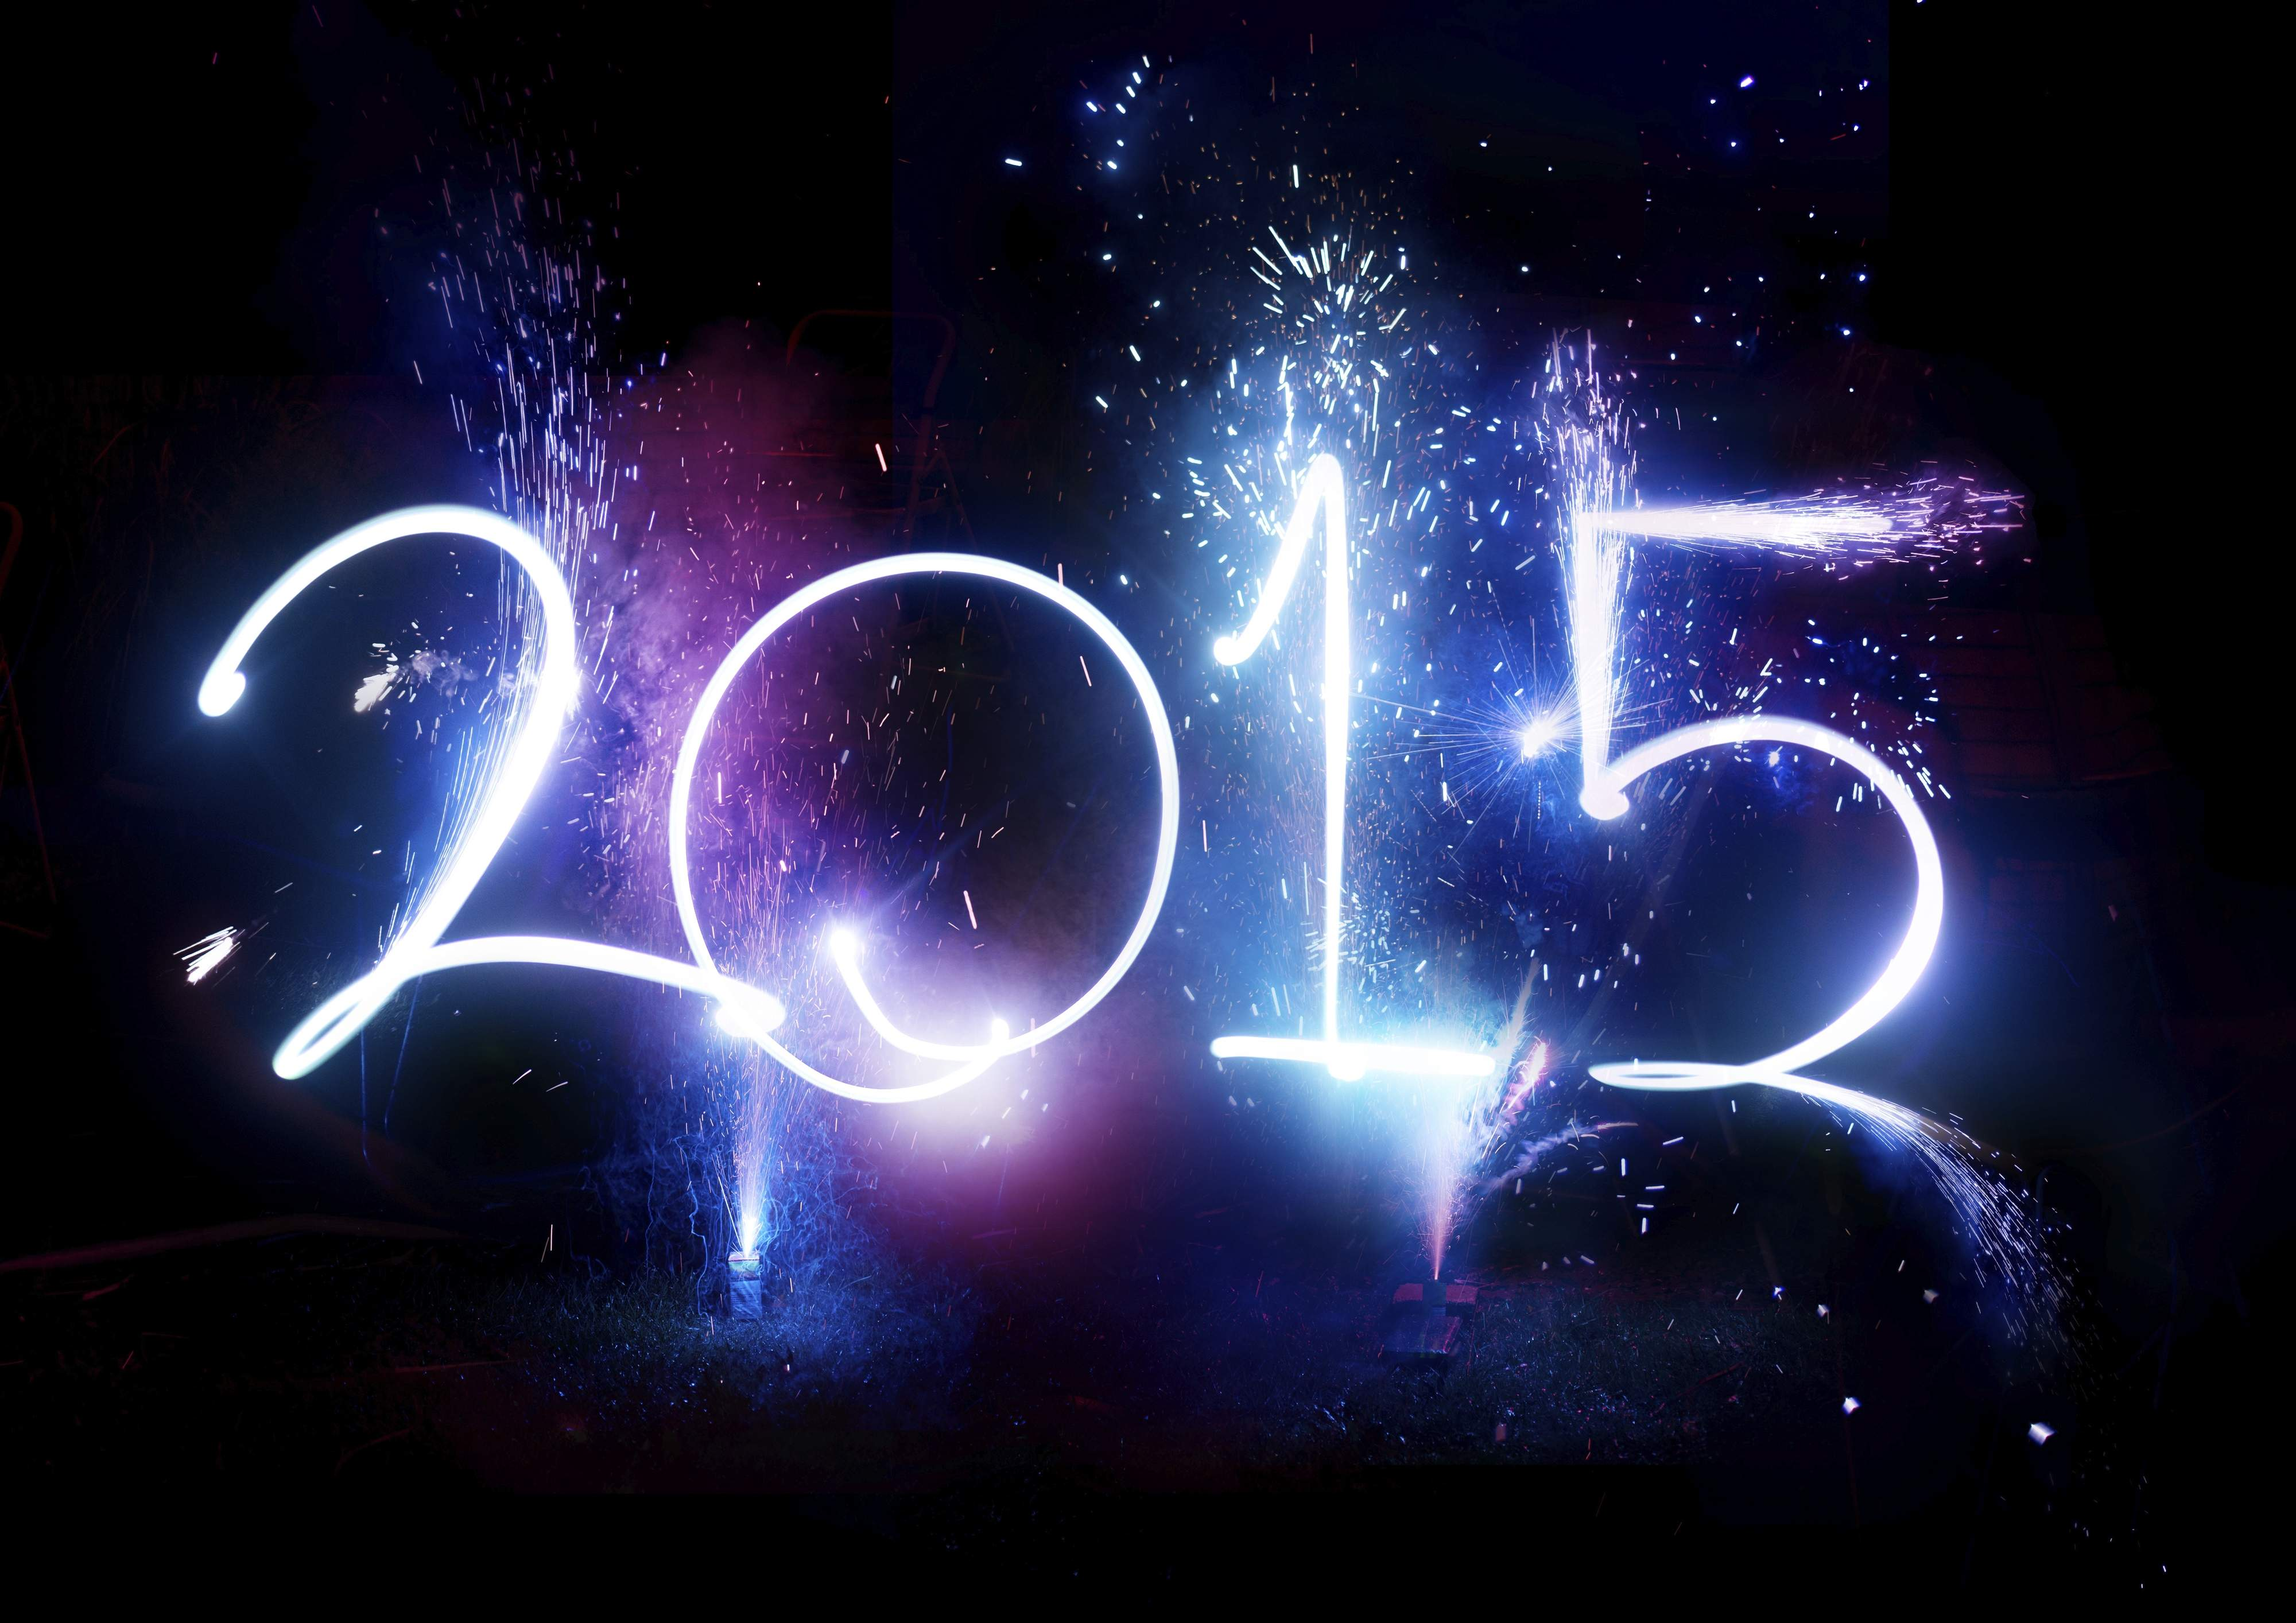 What is Your Word for 2015?